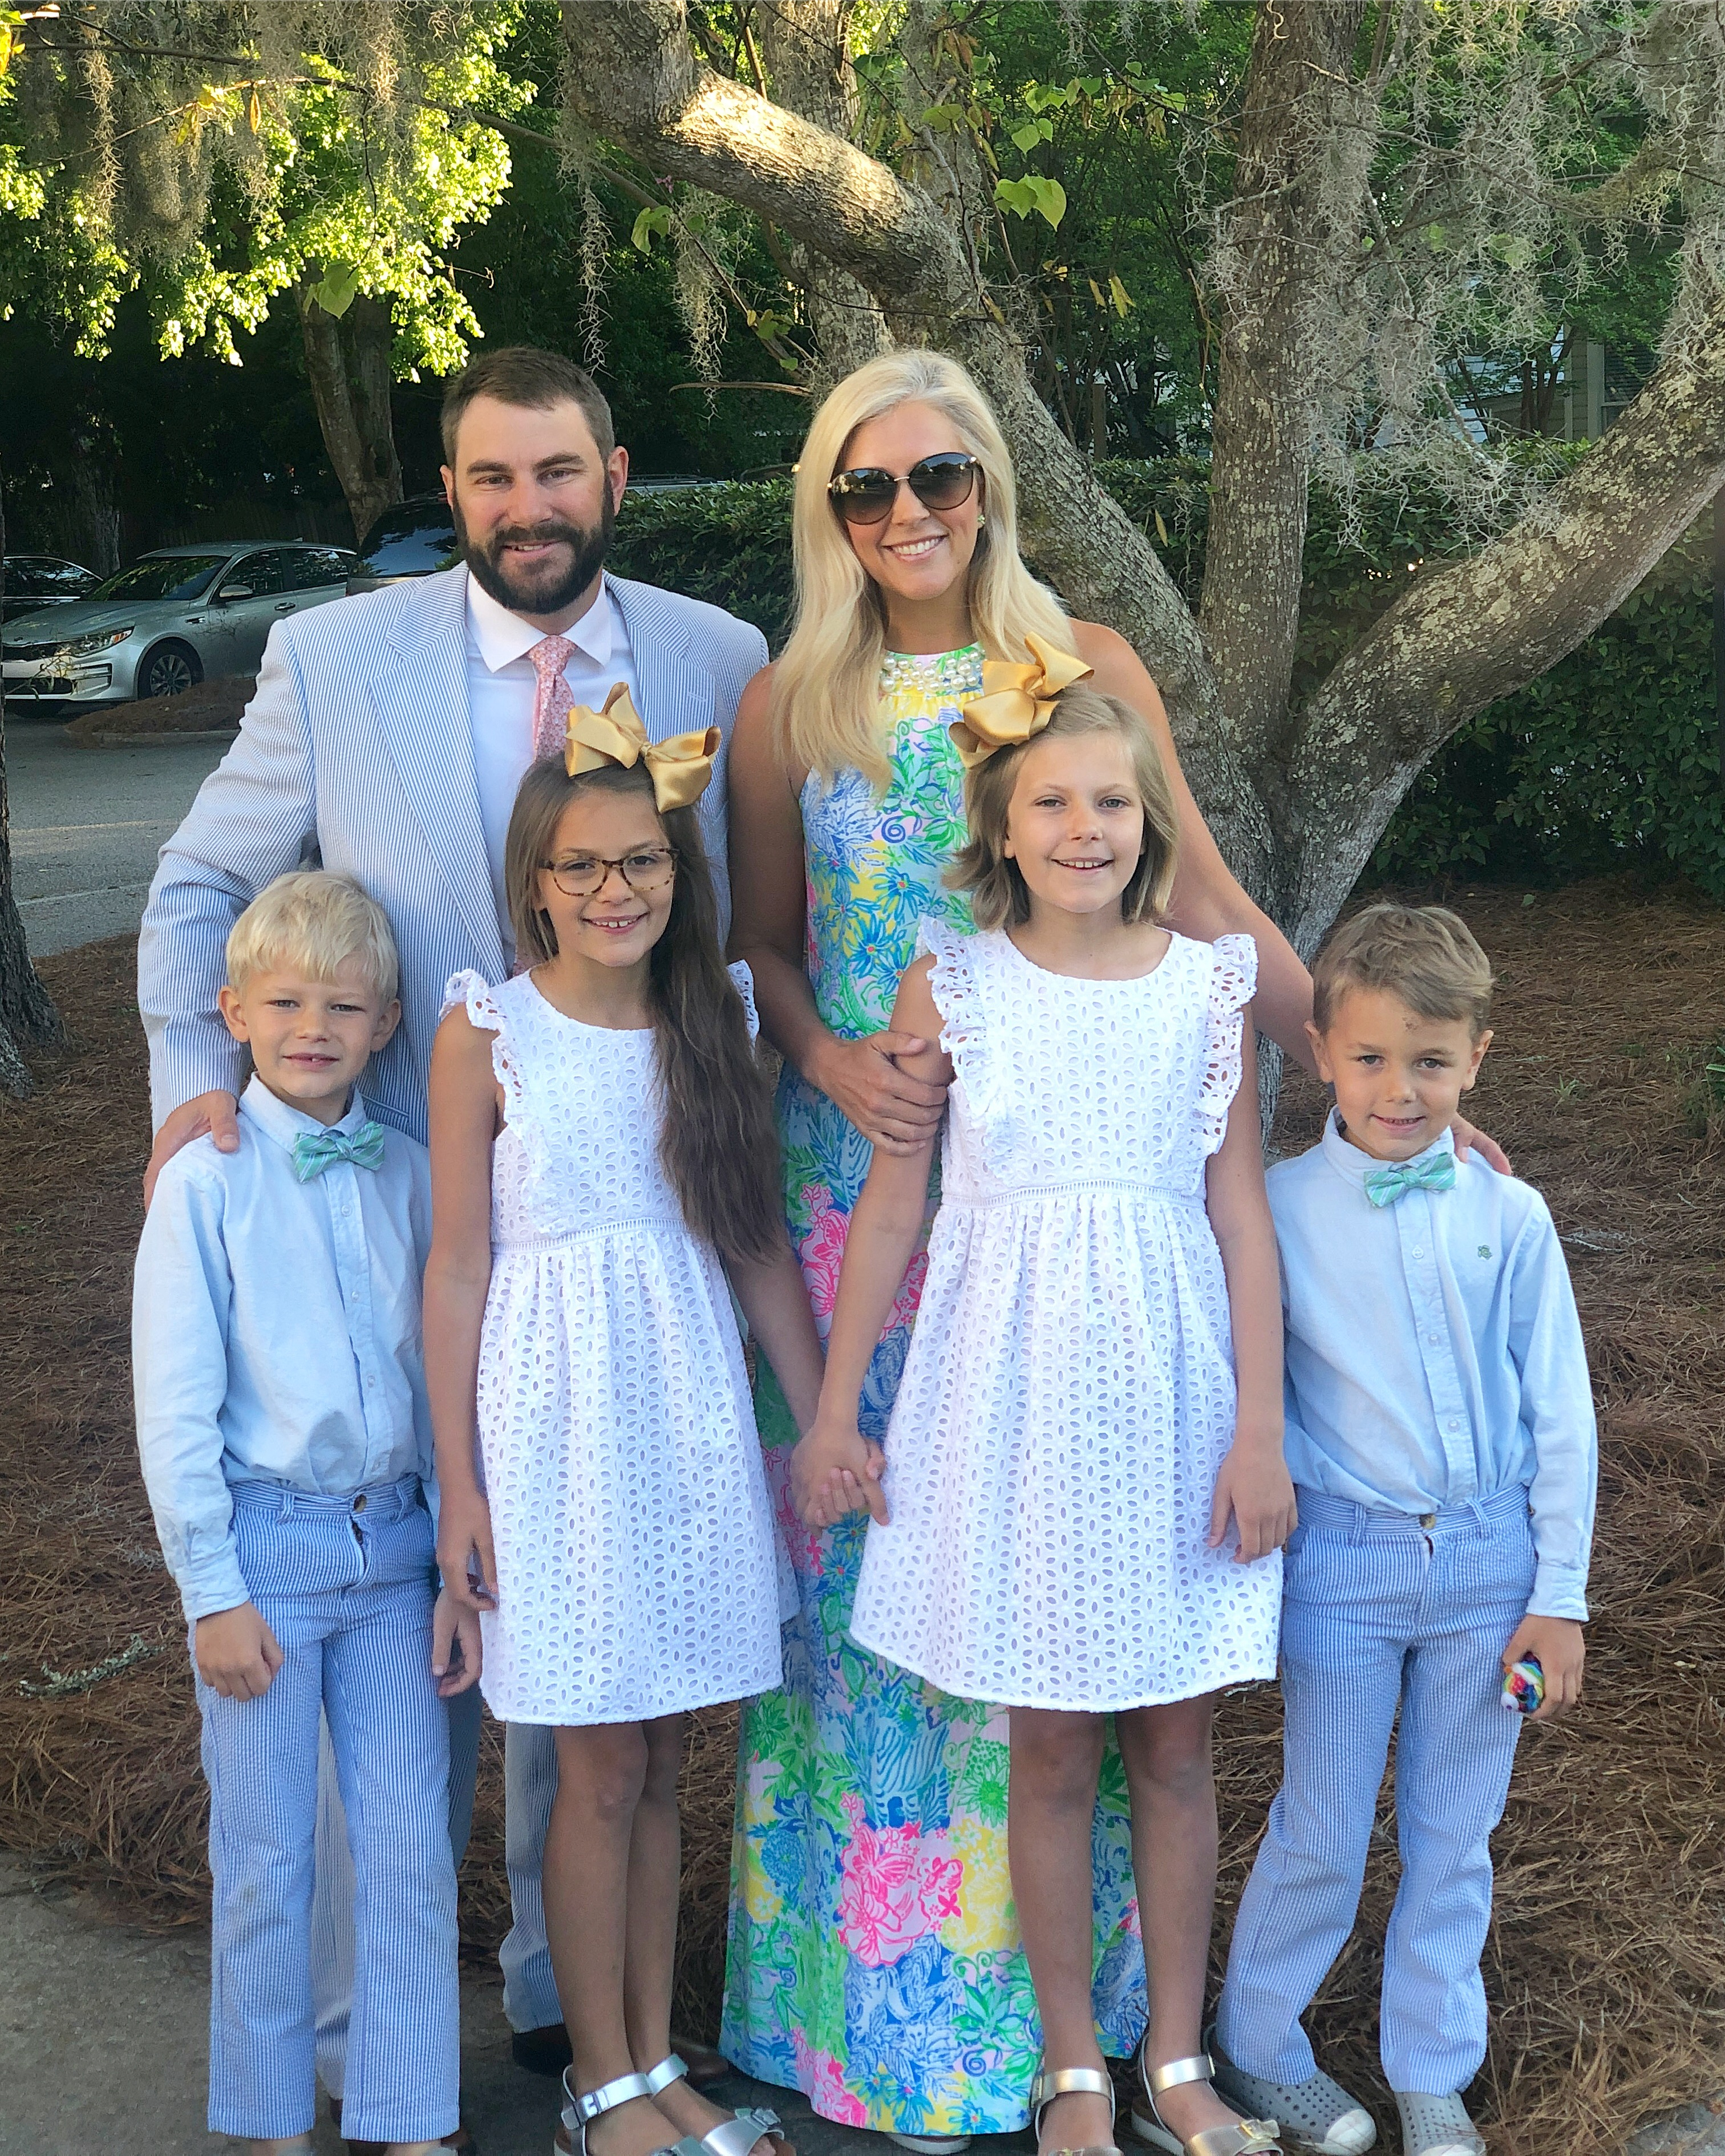 14a4f88f0 I hope y all had a fabulous Easter! The weather couldn t have been more  beautiful! We made it to the 7am Sunrise Service and it was so nice to beat  the ...